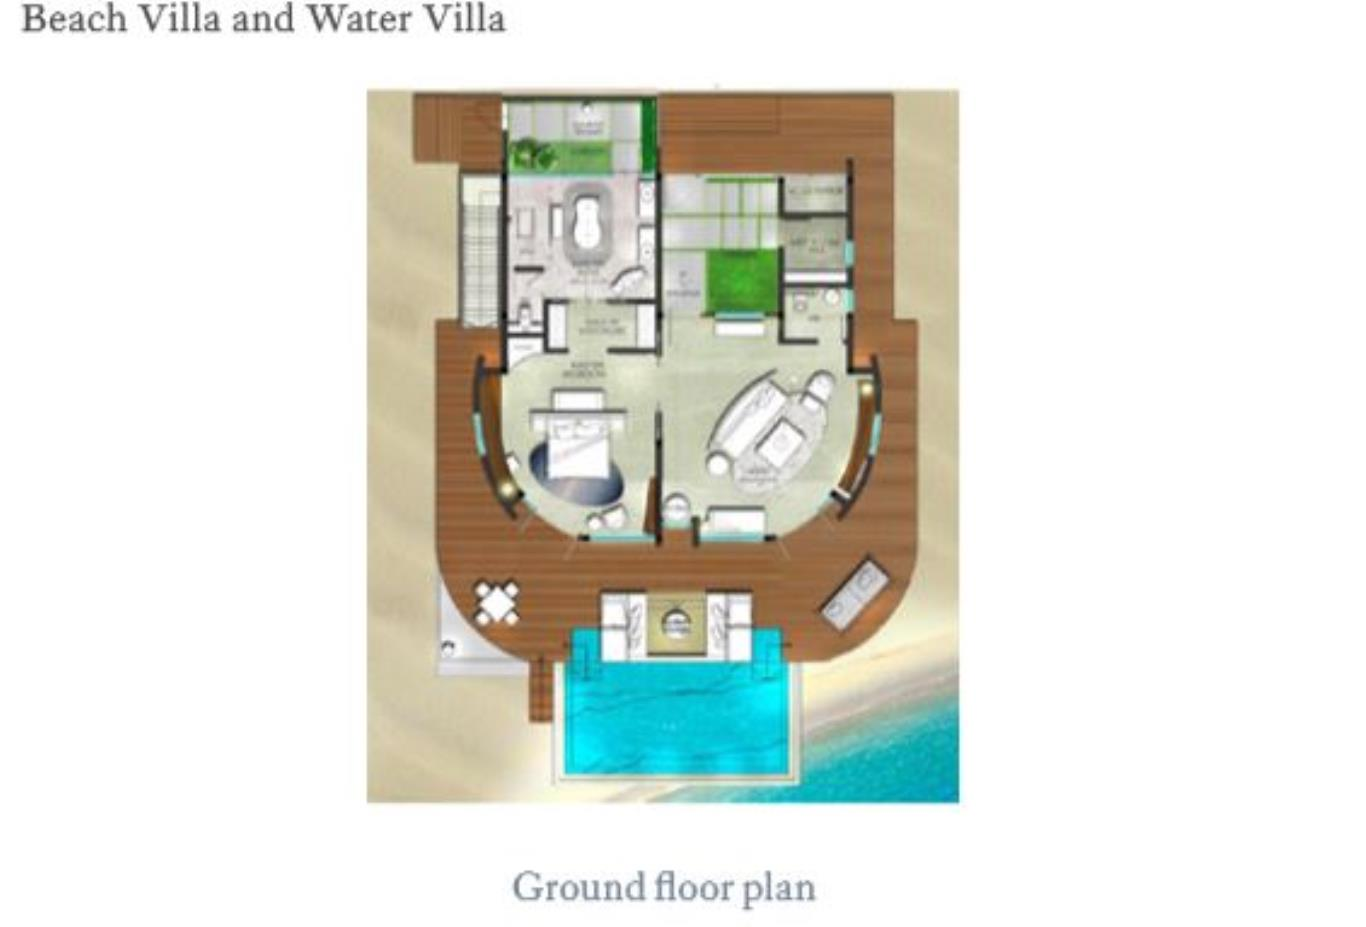 Floorplan Beach and Water Villa